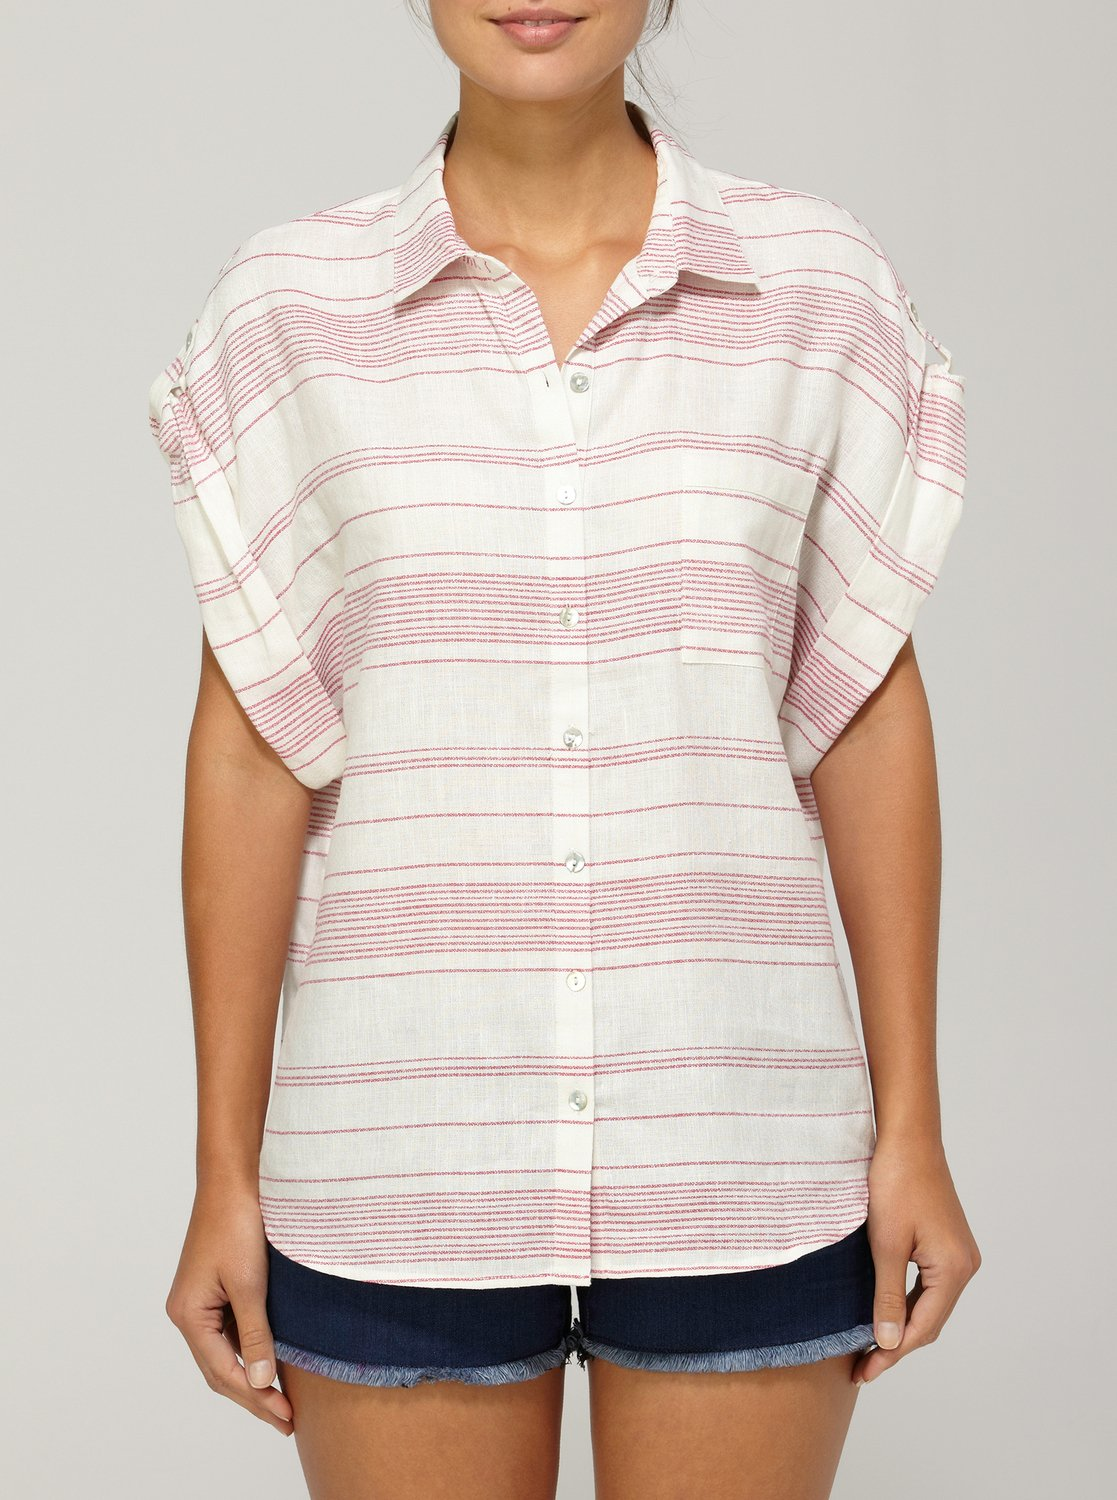 0 QSW Hibiscus Blouse 873208 Quiksilver f5f6faf6004d4